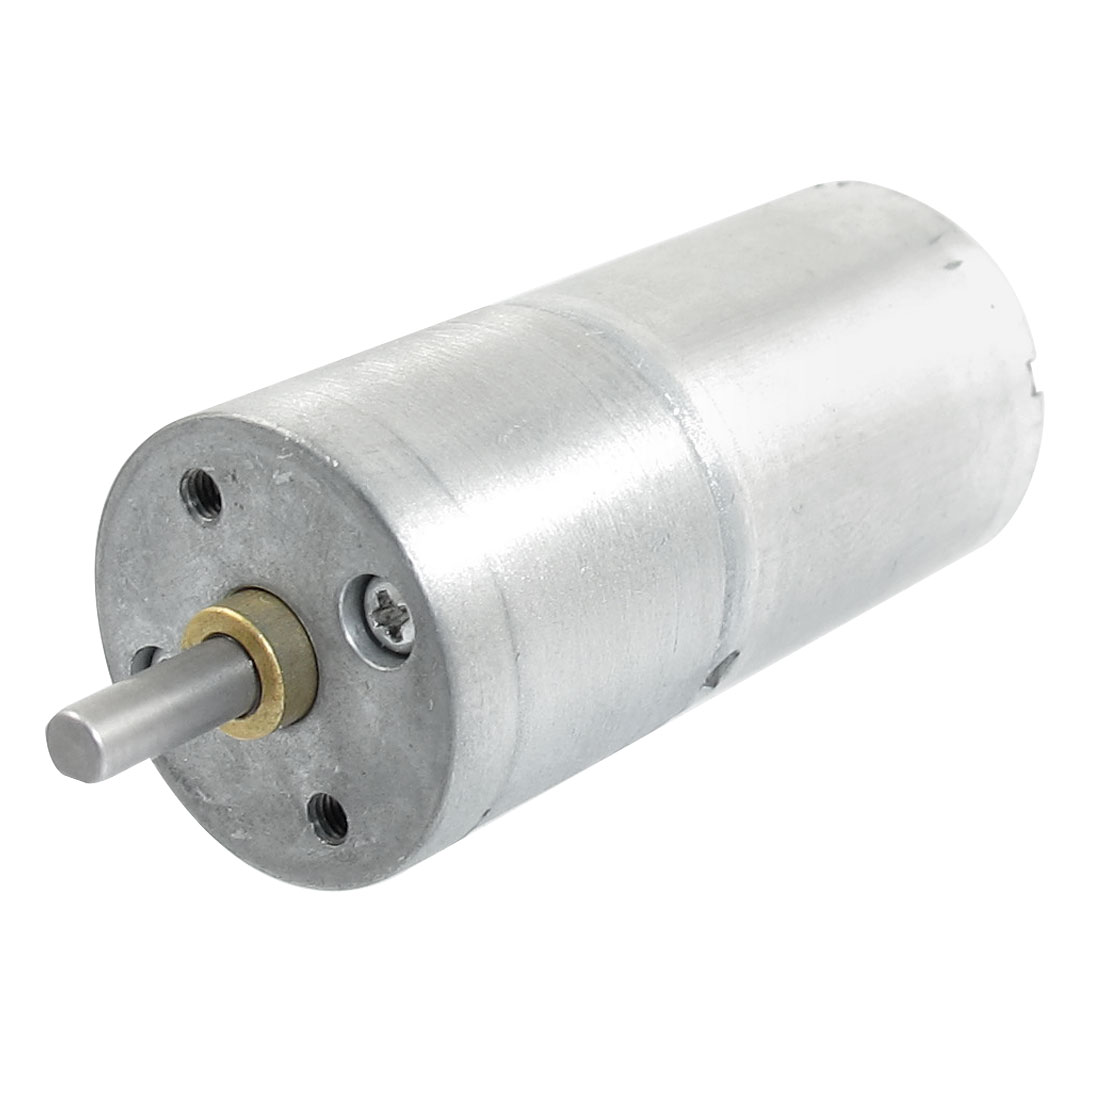 100-RPM-DC-12V-90N-CM-High-Torque-Micro-Electric-Gear-Box-Reduce-Motor